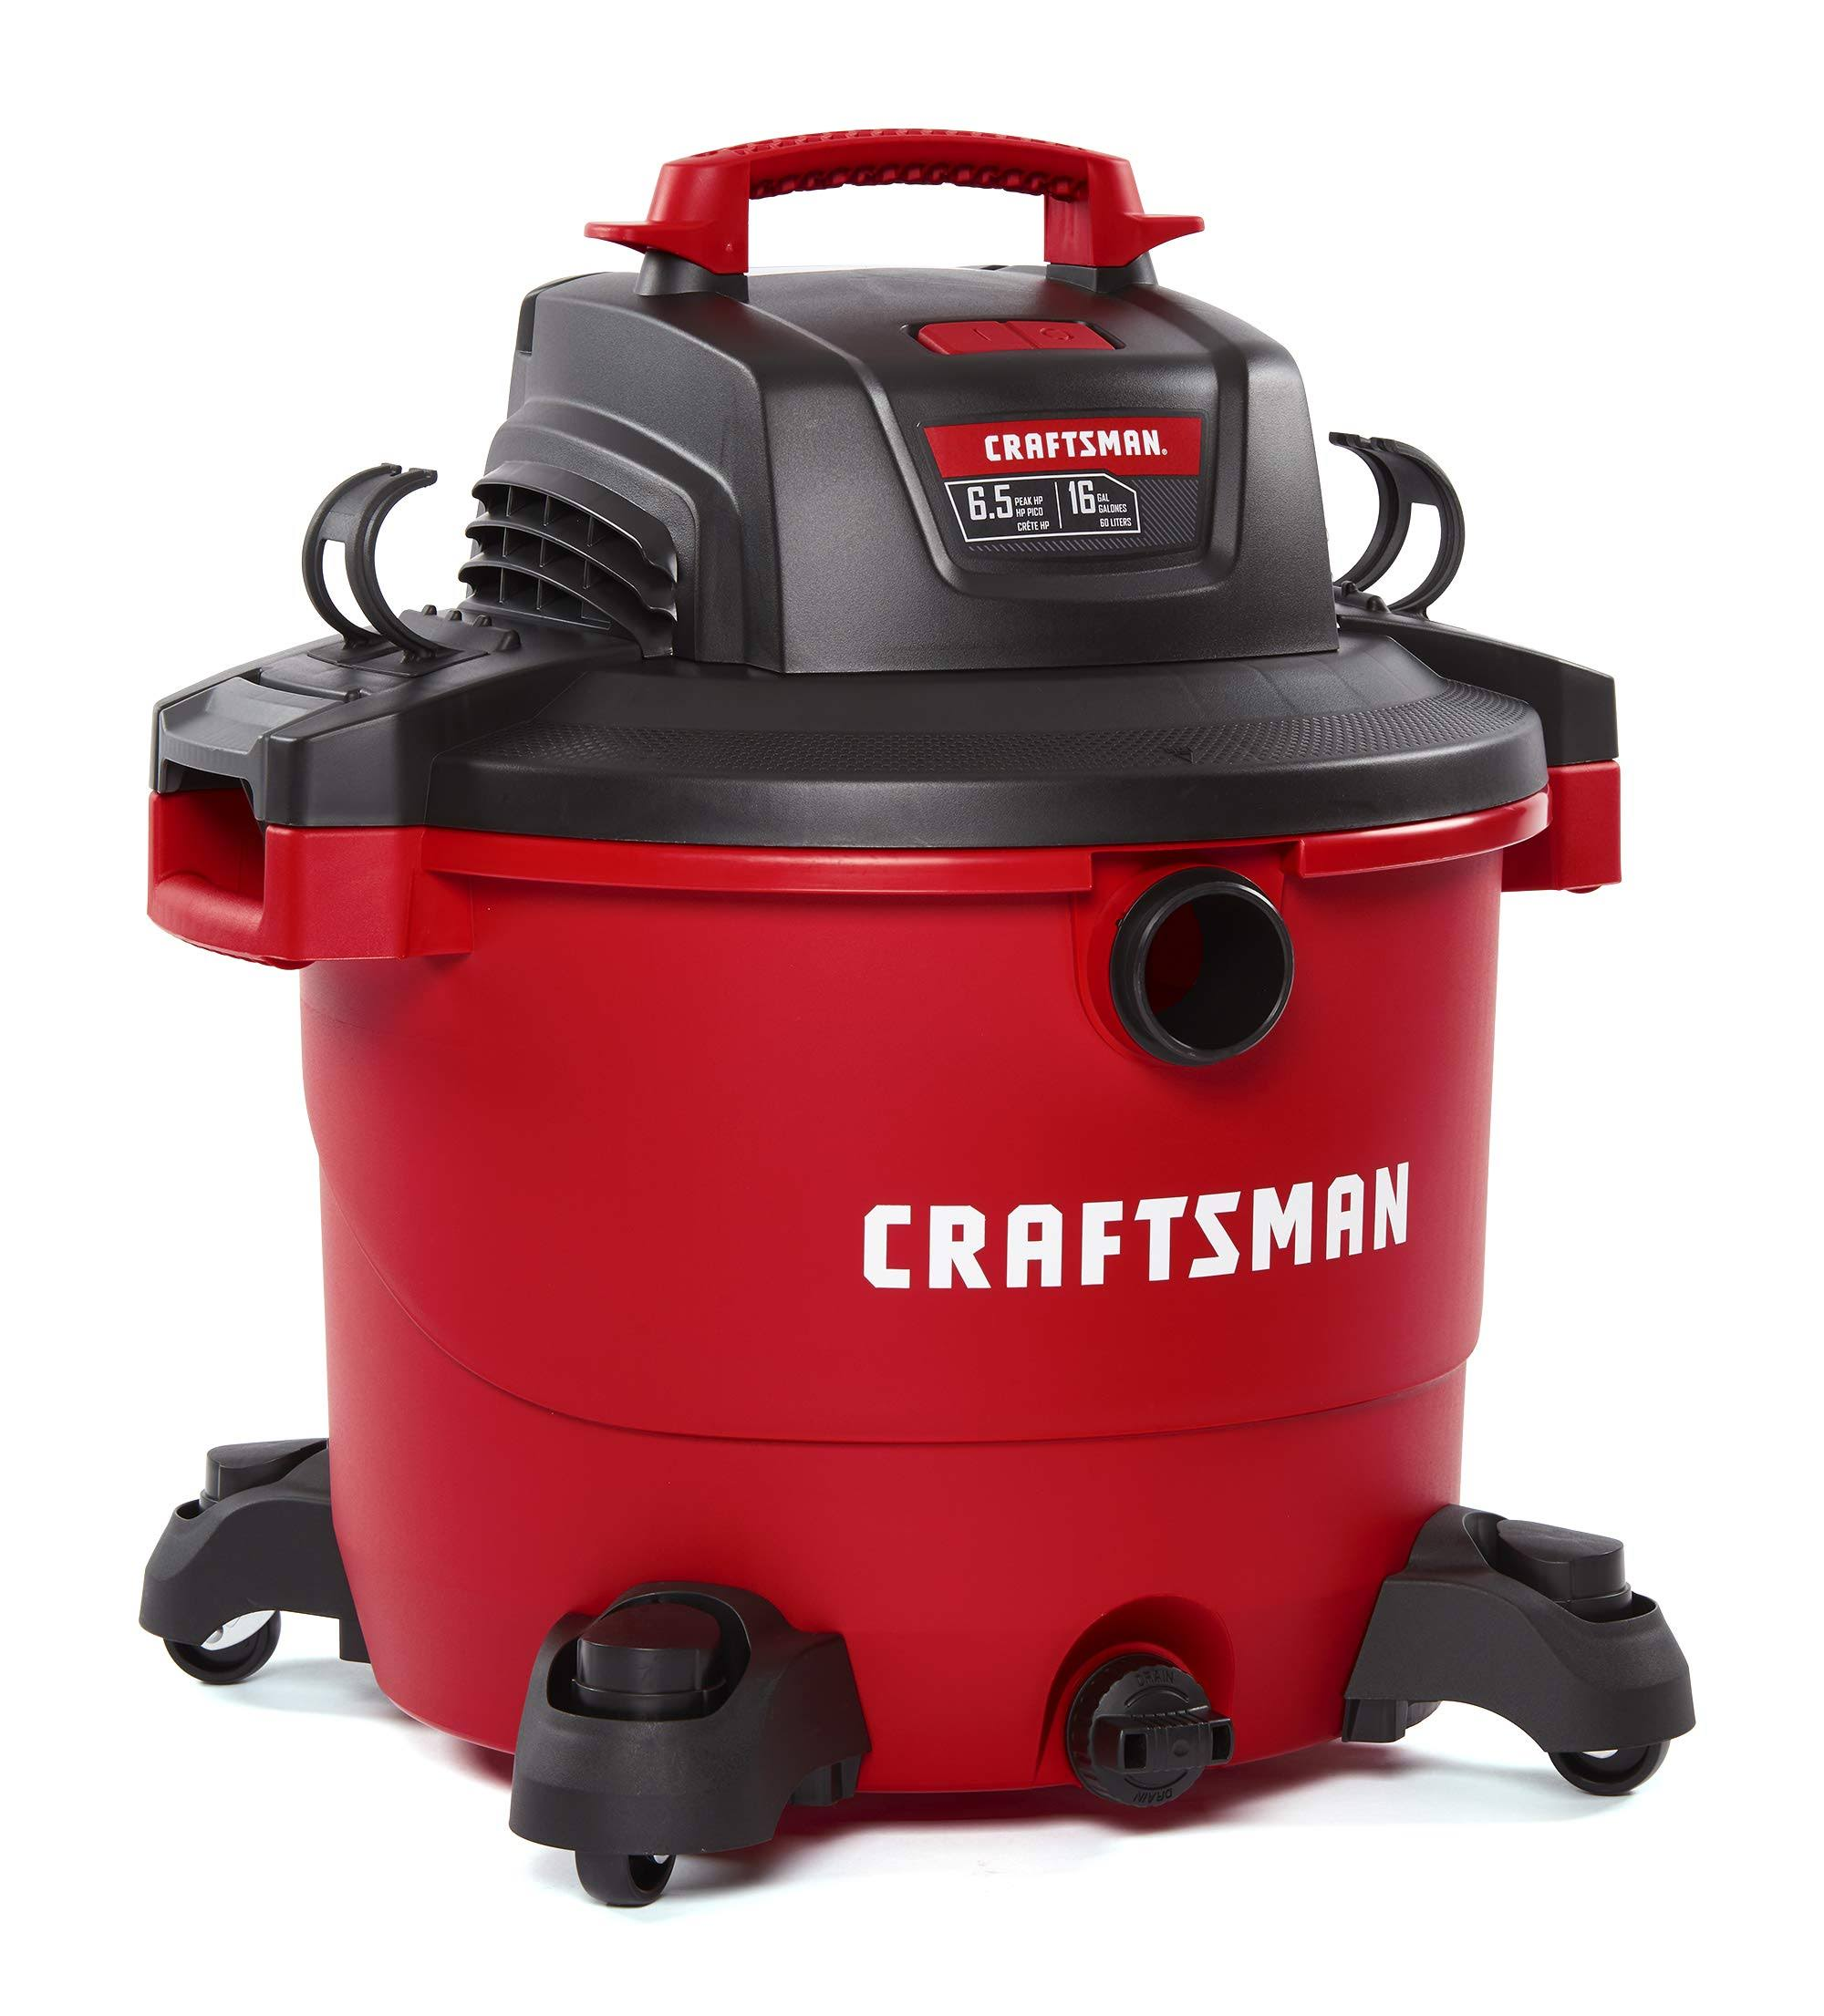 Craftsman 17595 Corded Wet and Dry Vacuum - Red, 6.5 Hp, 12 Amps, 120V, 16gal